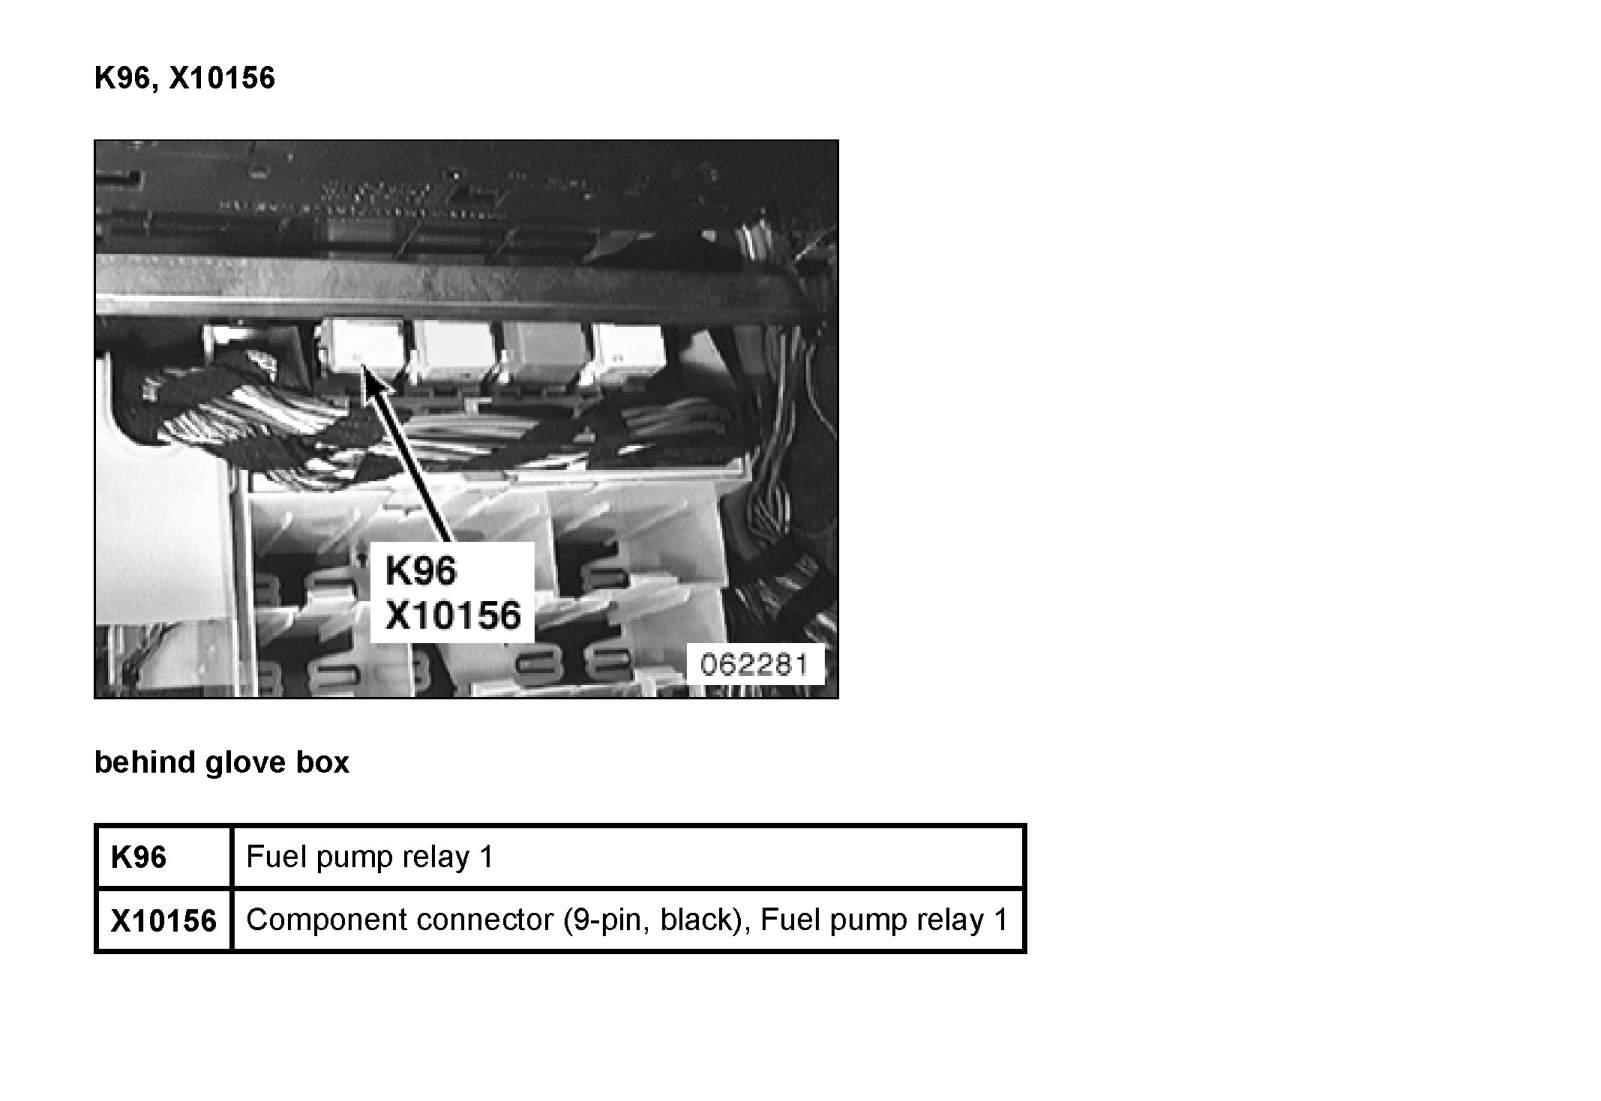 E90 Water Pump Fuse Box Not Lossing Wiring Diagram 2010 Bmw 335d 1999 328i Wiper Relay Location Free Engine 2006 330i